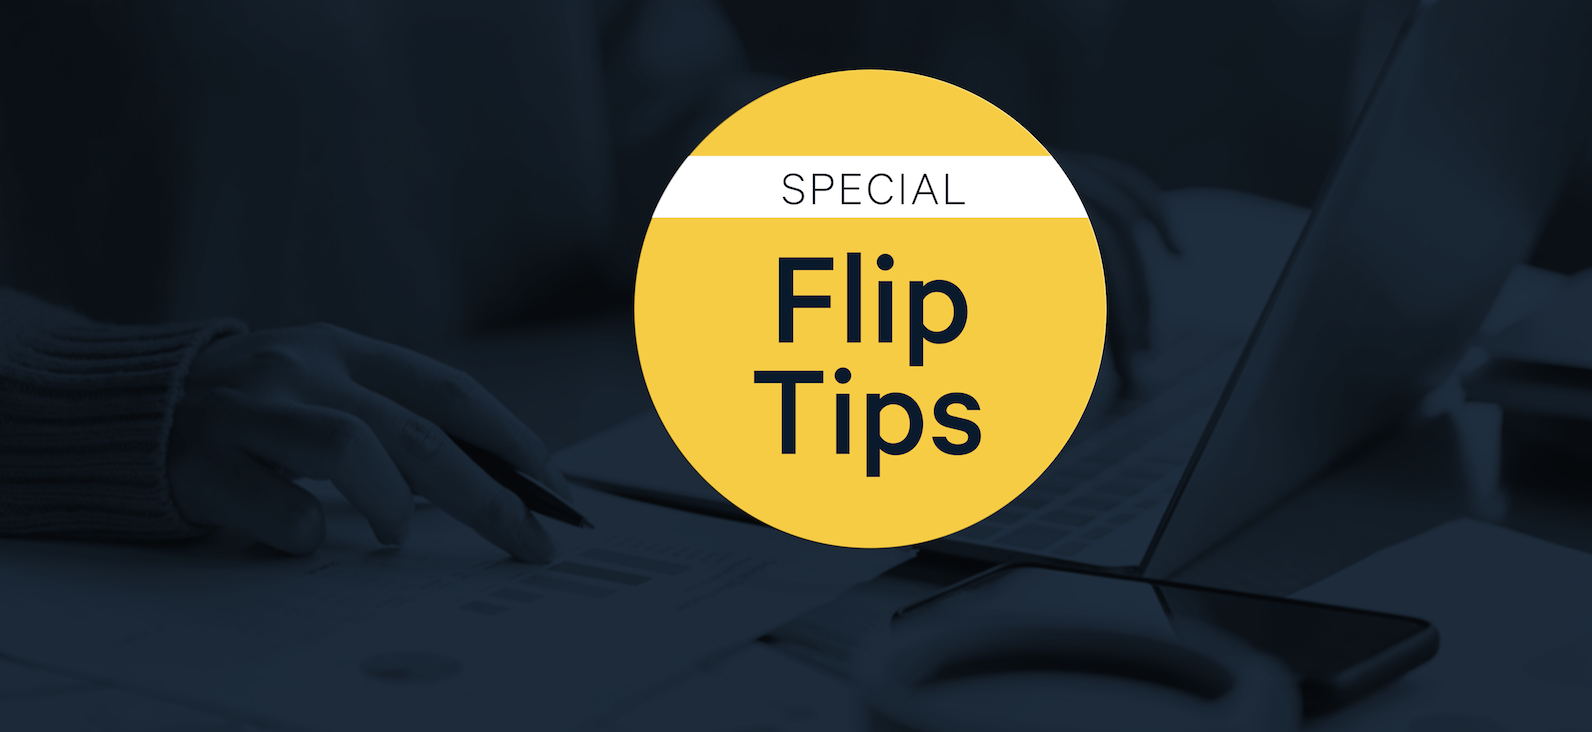 Flip Tips Special: Helpful Advice for Real Estate Investors During the Coronavirus Pandemic